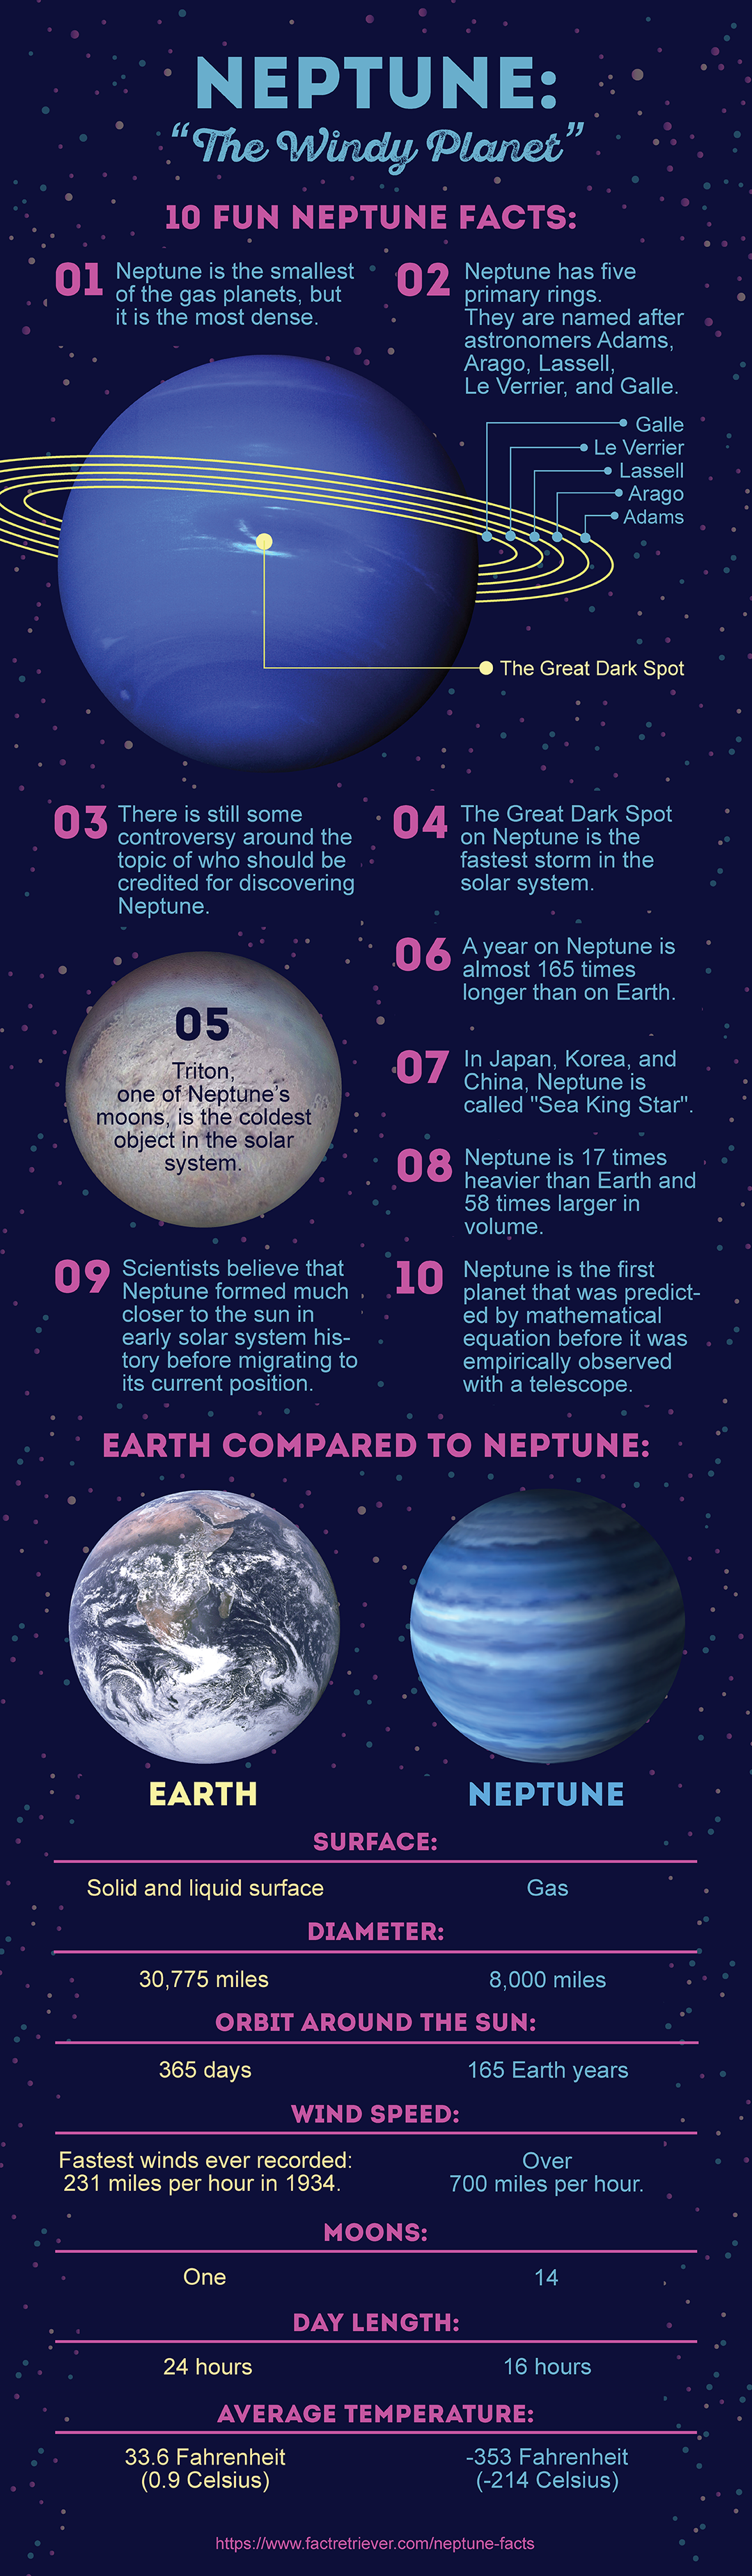 35 Interesting Facts about Neptune | FactRetriever.com ...